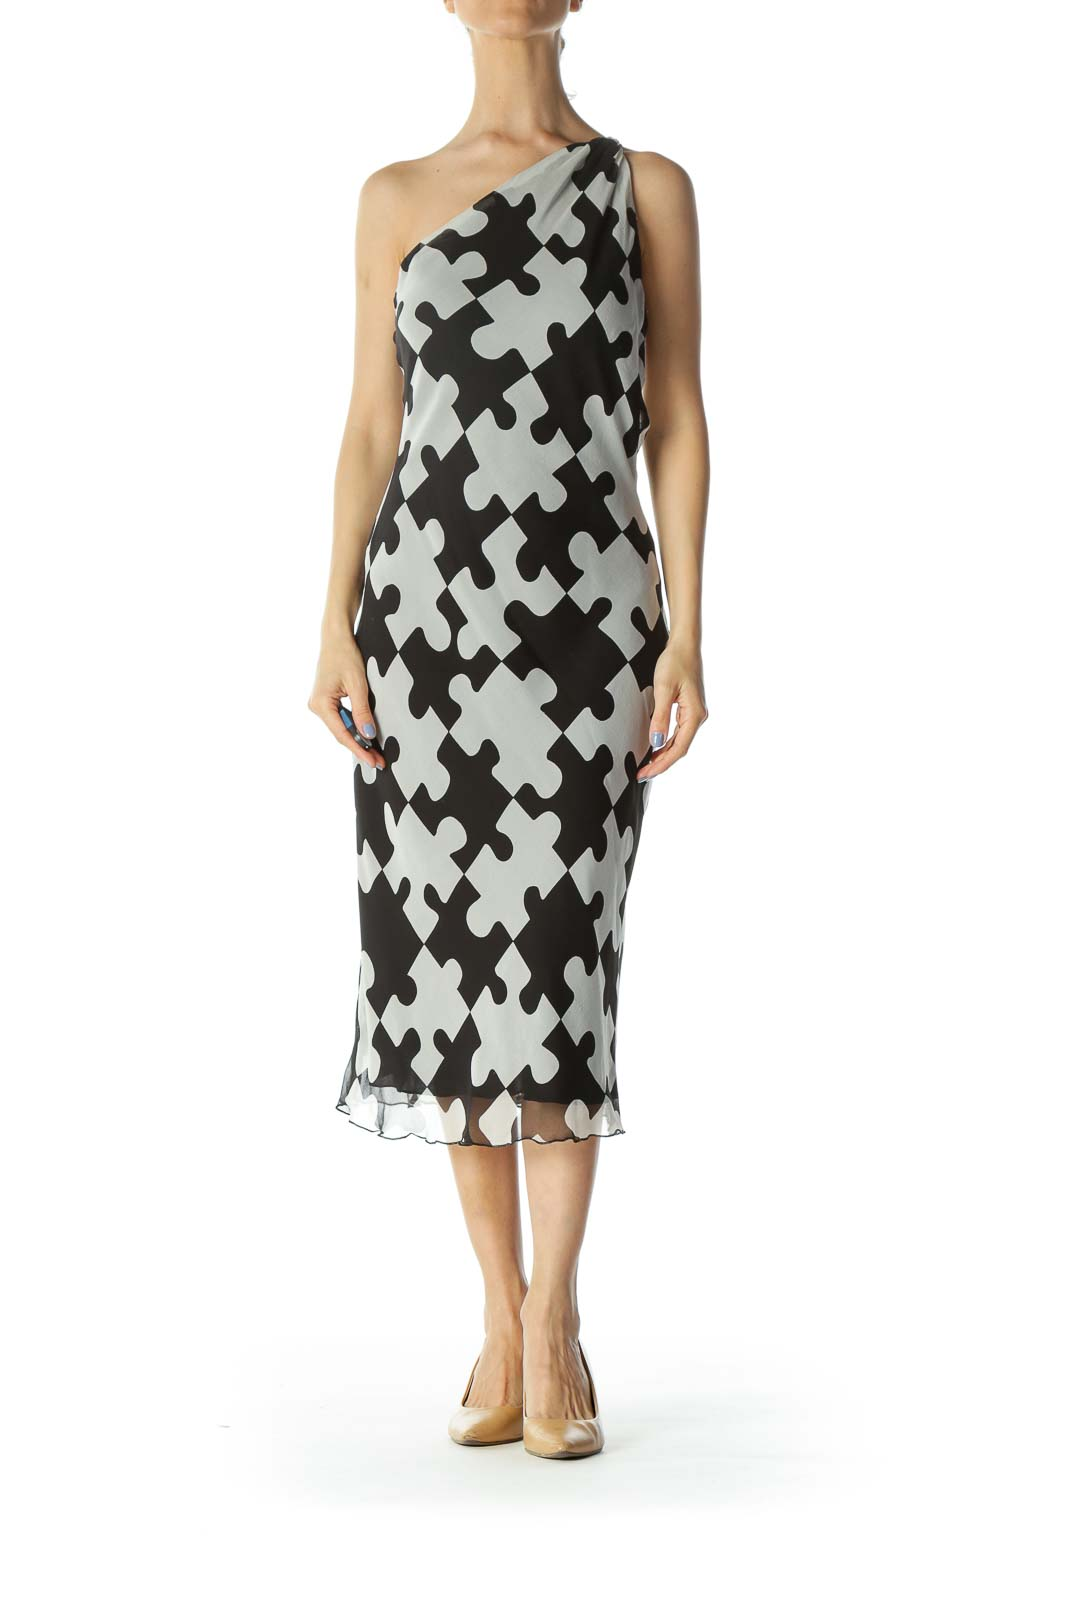 Black/White 100% Silk Puzzle-Print Knot-Detail Light Dress